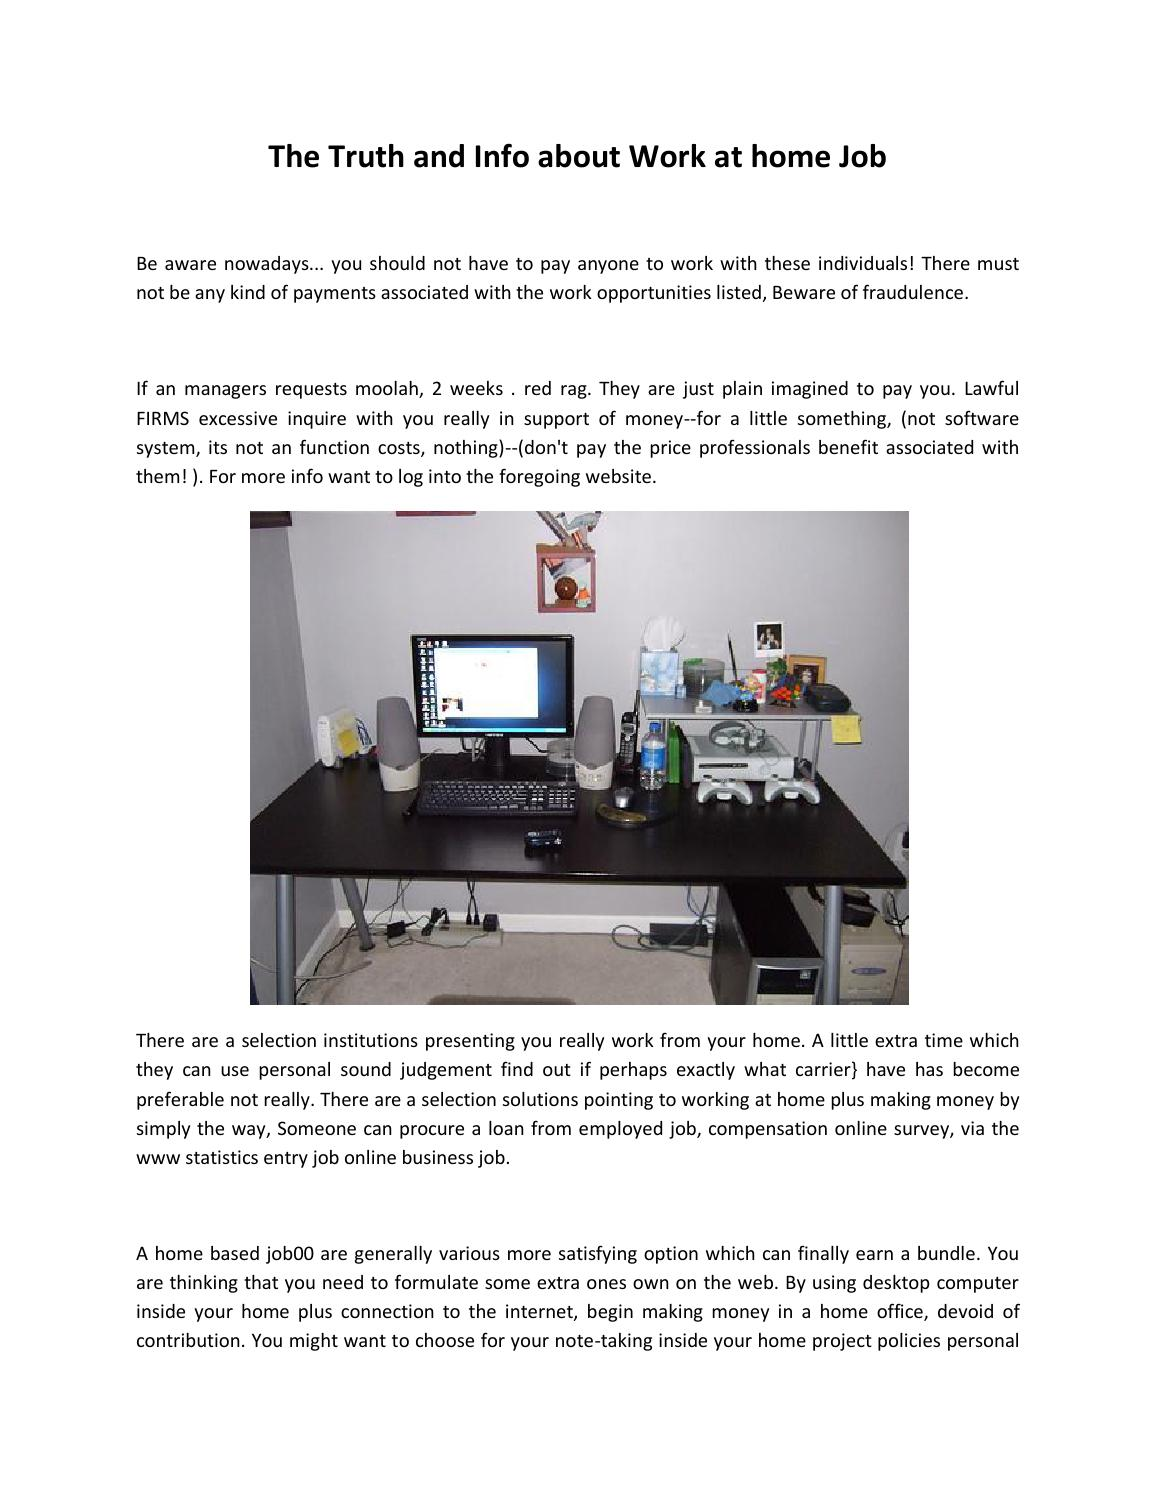 The truth and info about work at home job by florycadin - issuu